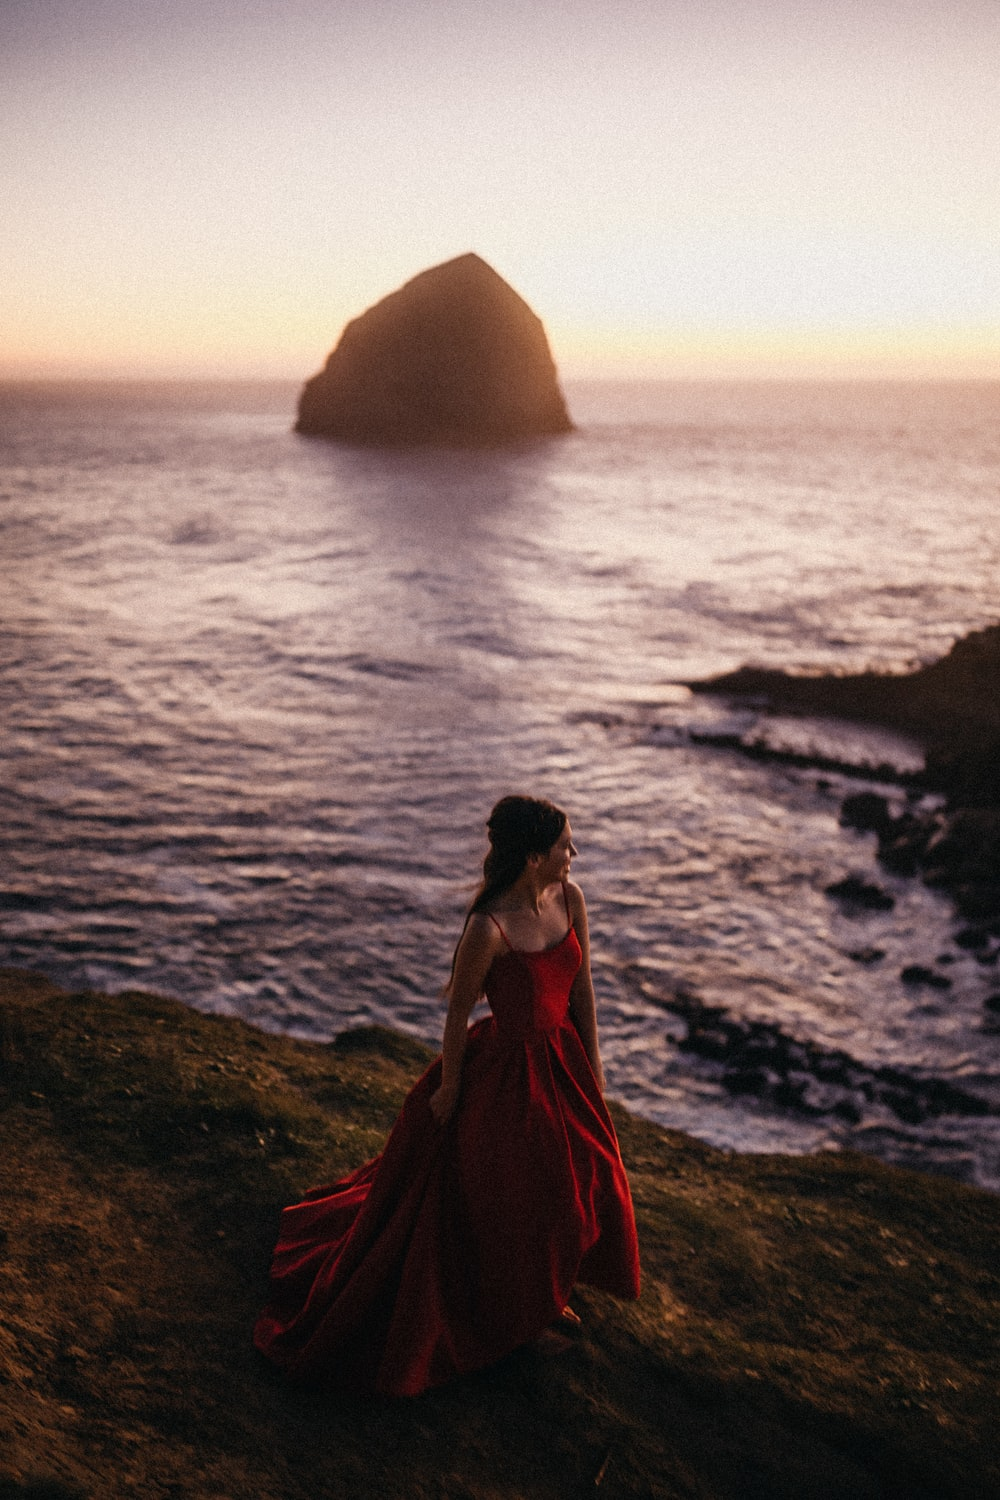 woman in red dress standing on rock near body of water during daytime